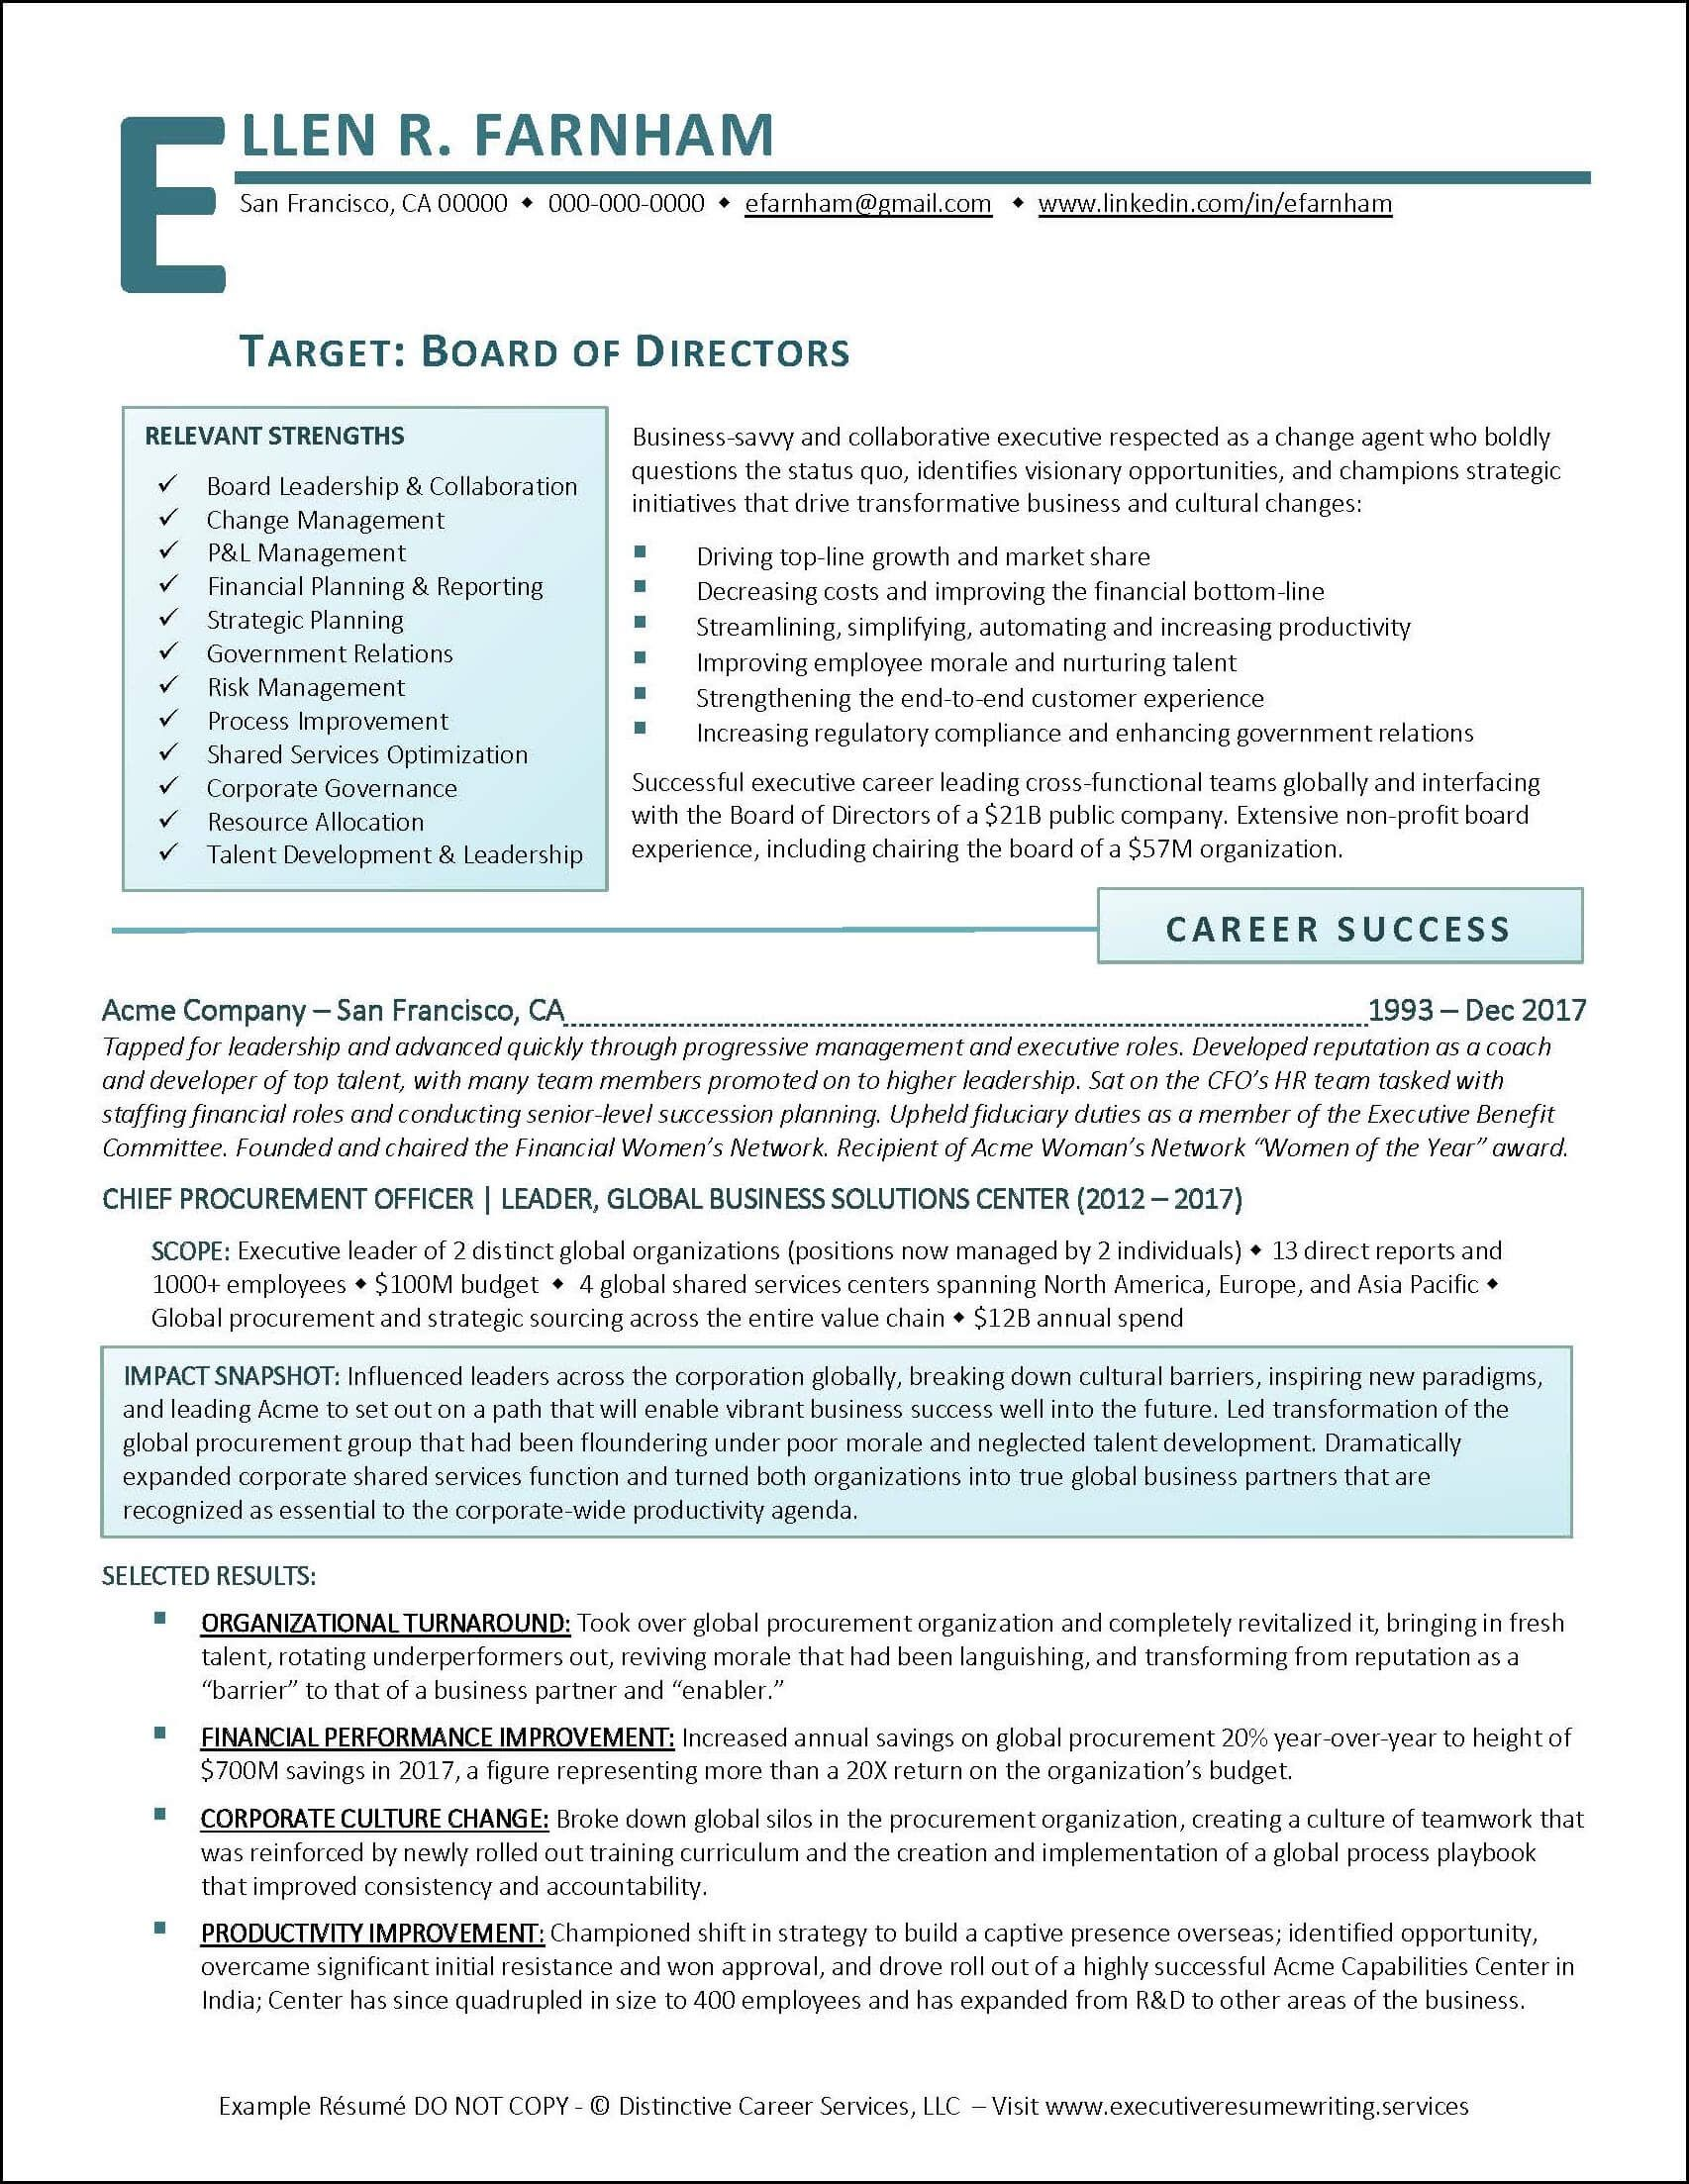 Award Winning Executive Resume Examples With Images Executive